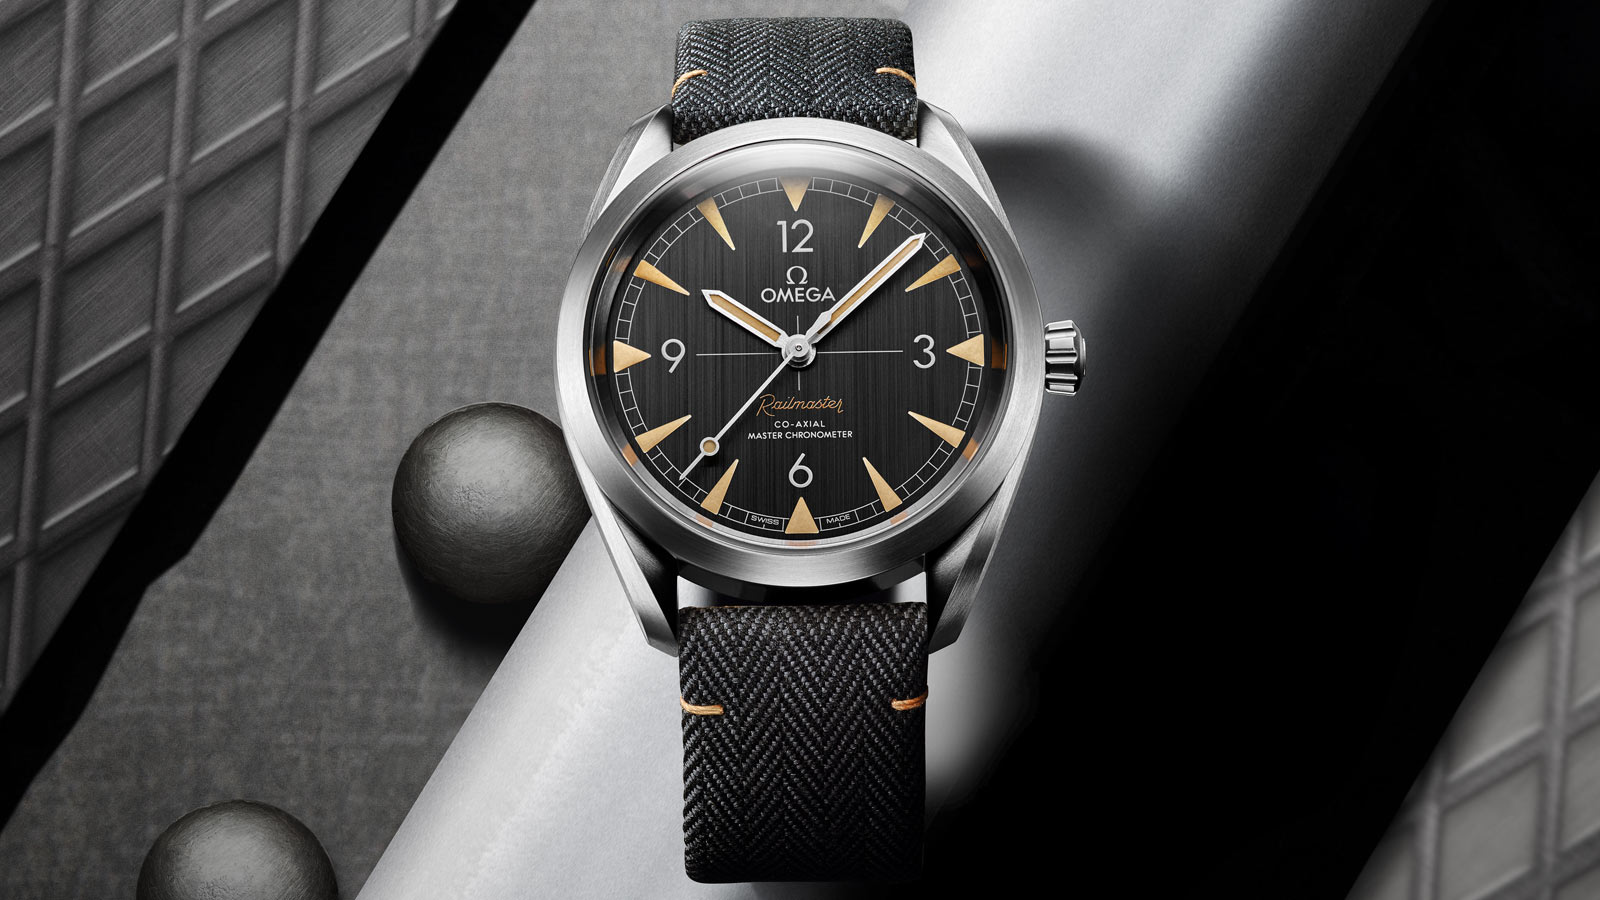 Seamaster Railmaster Railmaster Omega Co‑Axial Master Chronometer 40 mm - 220.12.40.20.01.001 - View 1